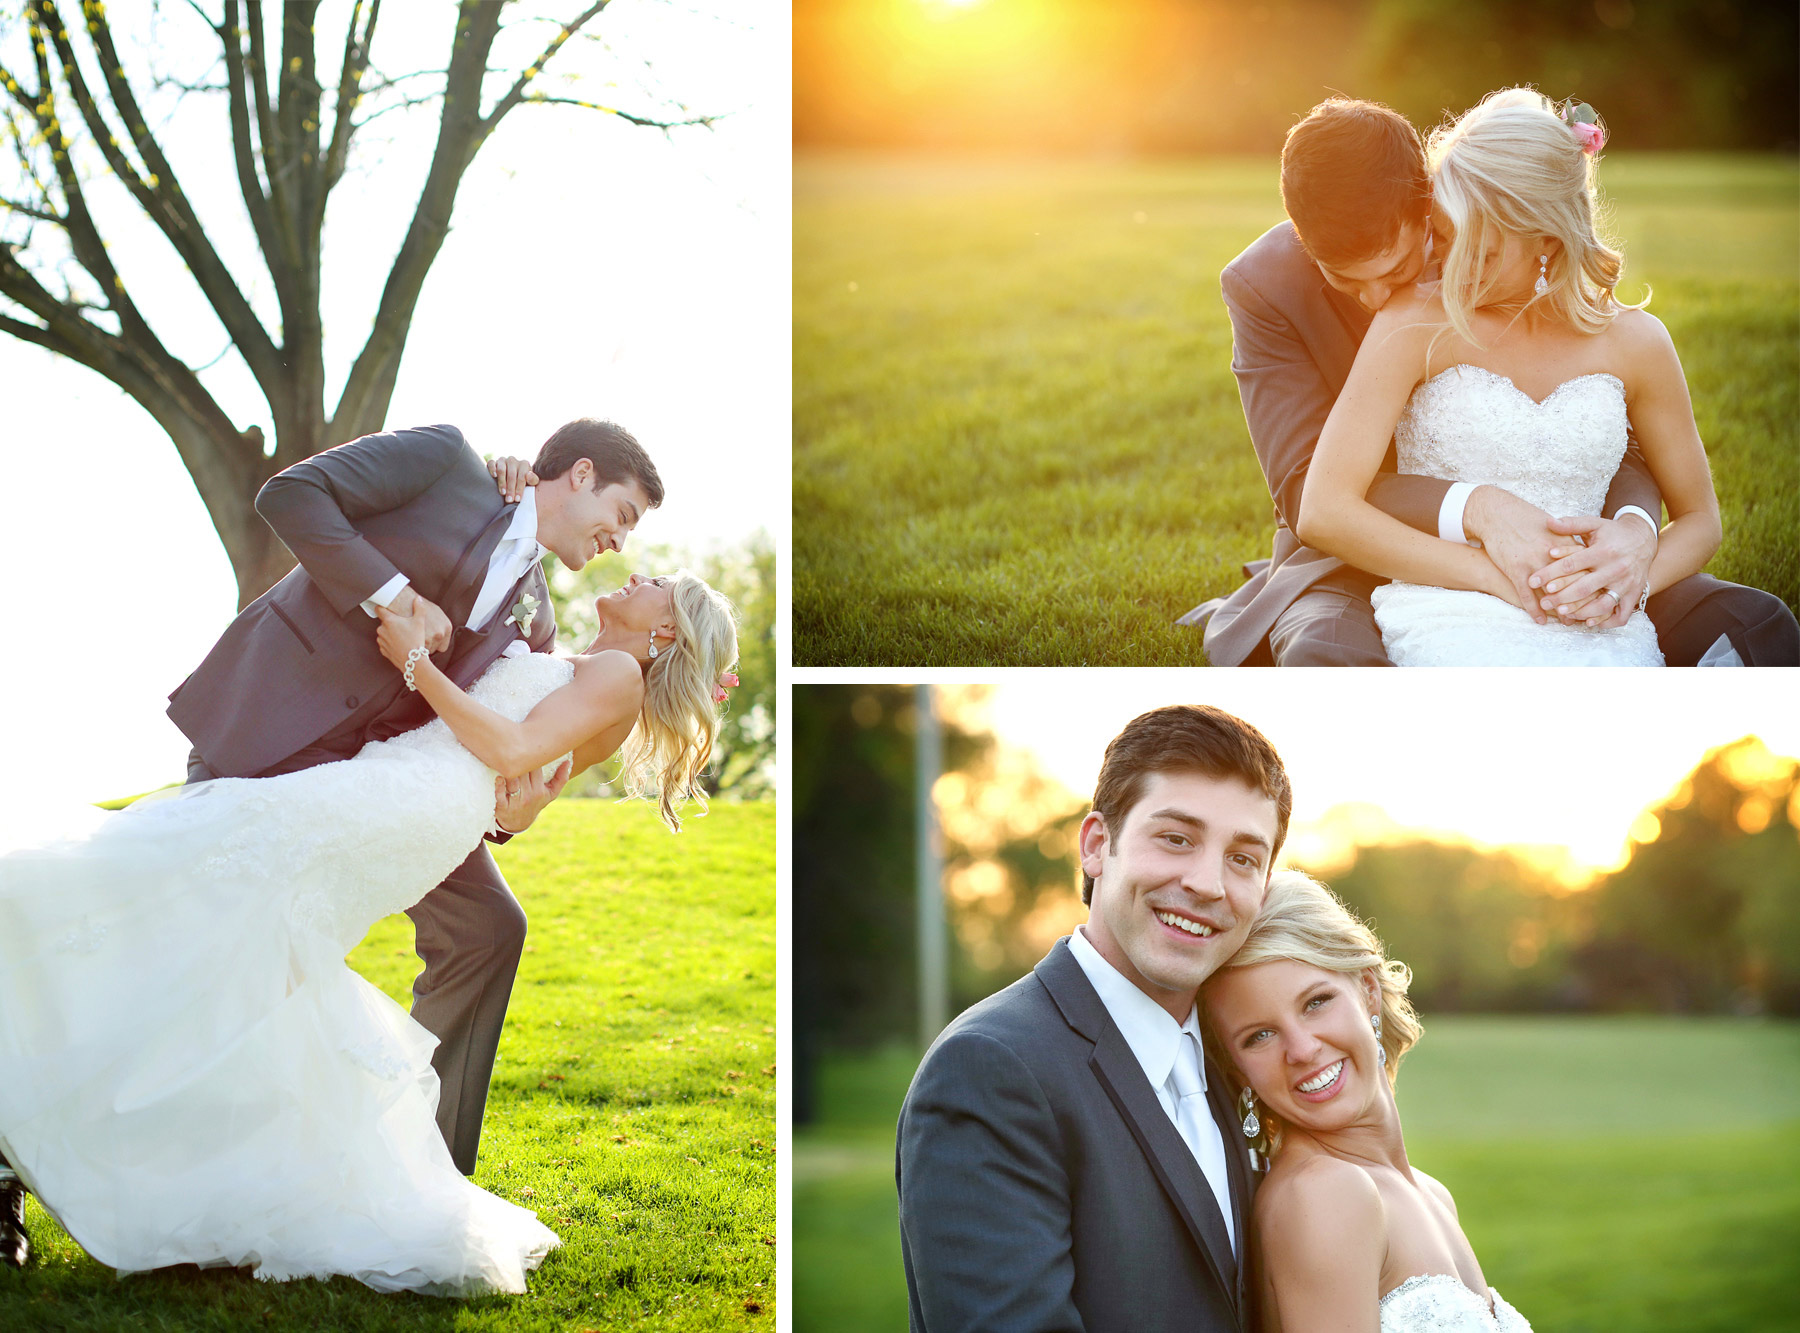 18-Minneapolis-Minnesota-Wedding-Photography-by-Vick-Photography-at-Minikahda-Country-Club-Sunset-Sarah-&-Chad.jpg